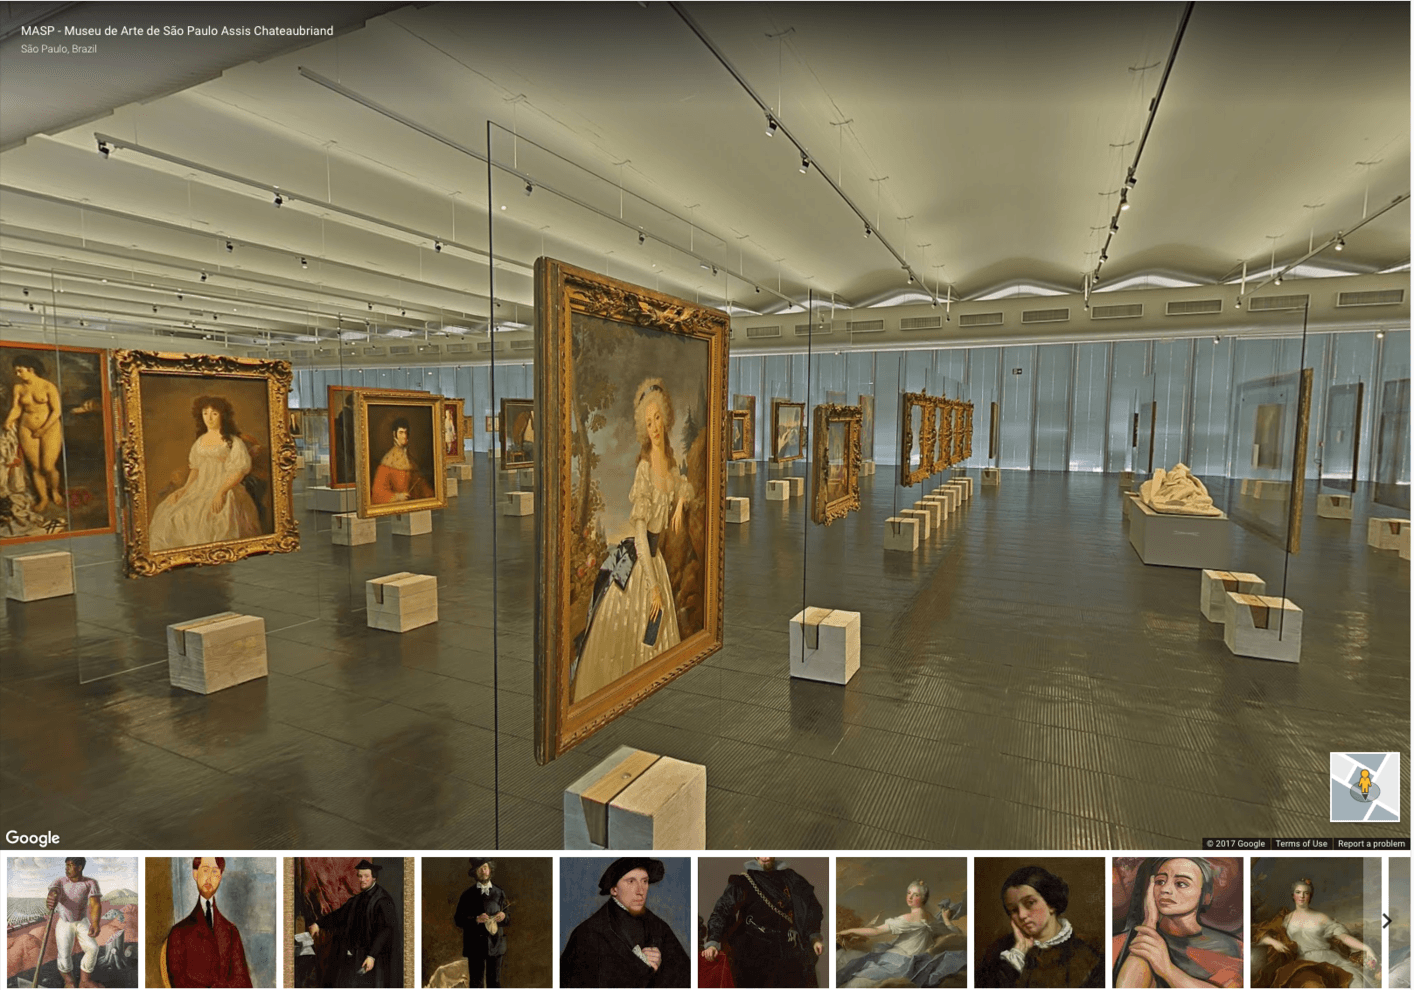 Walk through the picture gallery of the Museu de Arte de São Paulo,  Brazil's first modern museum. Credit: Google Arts & Culture Displaying 100  ...